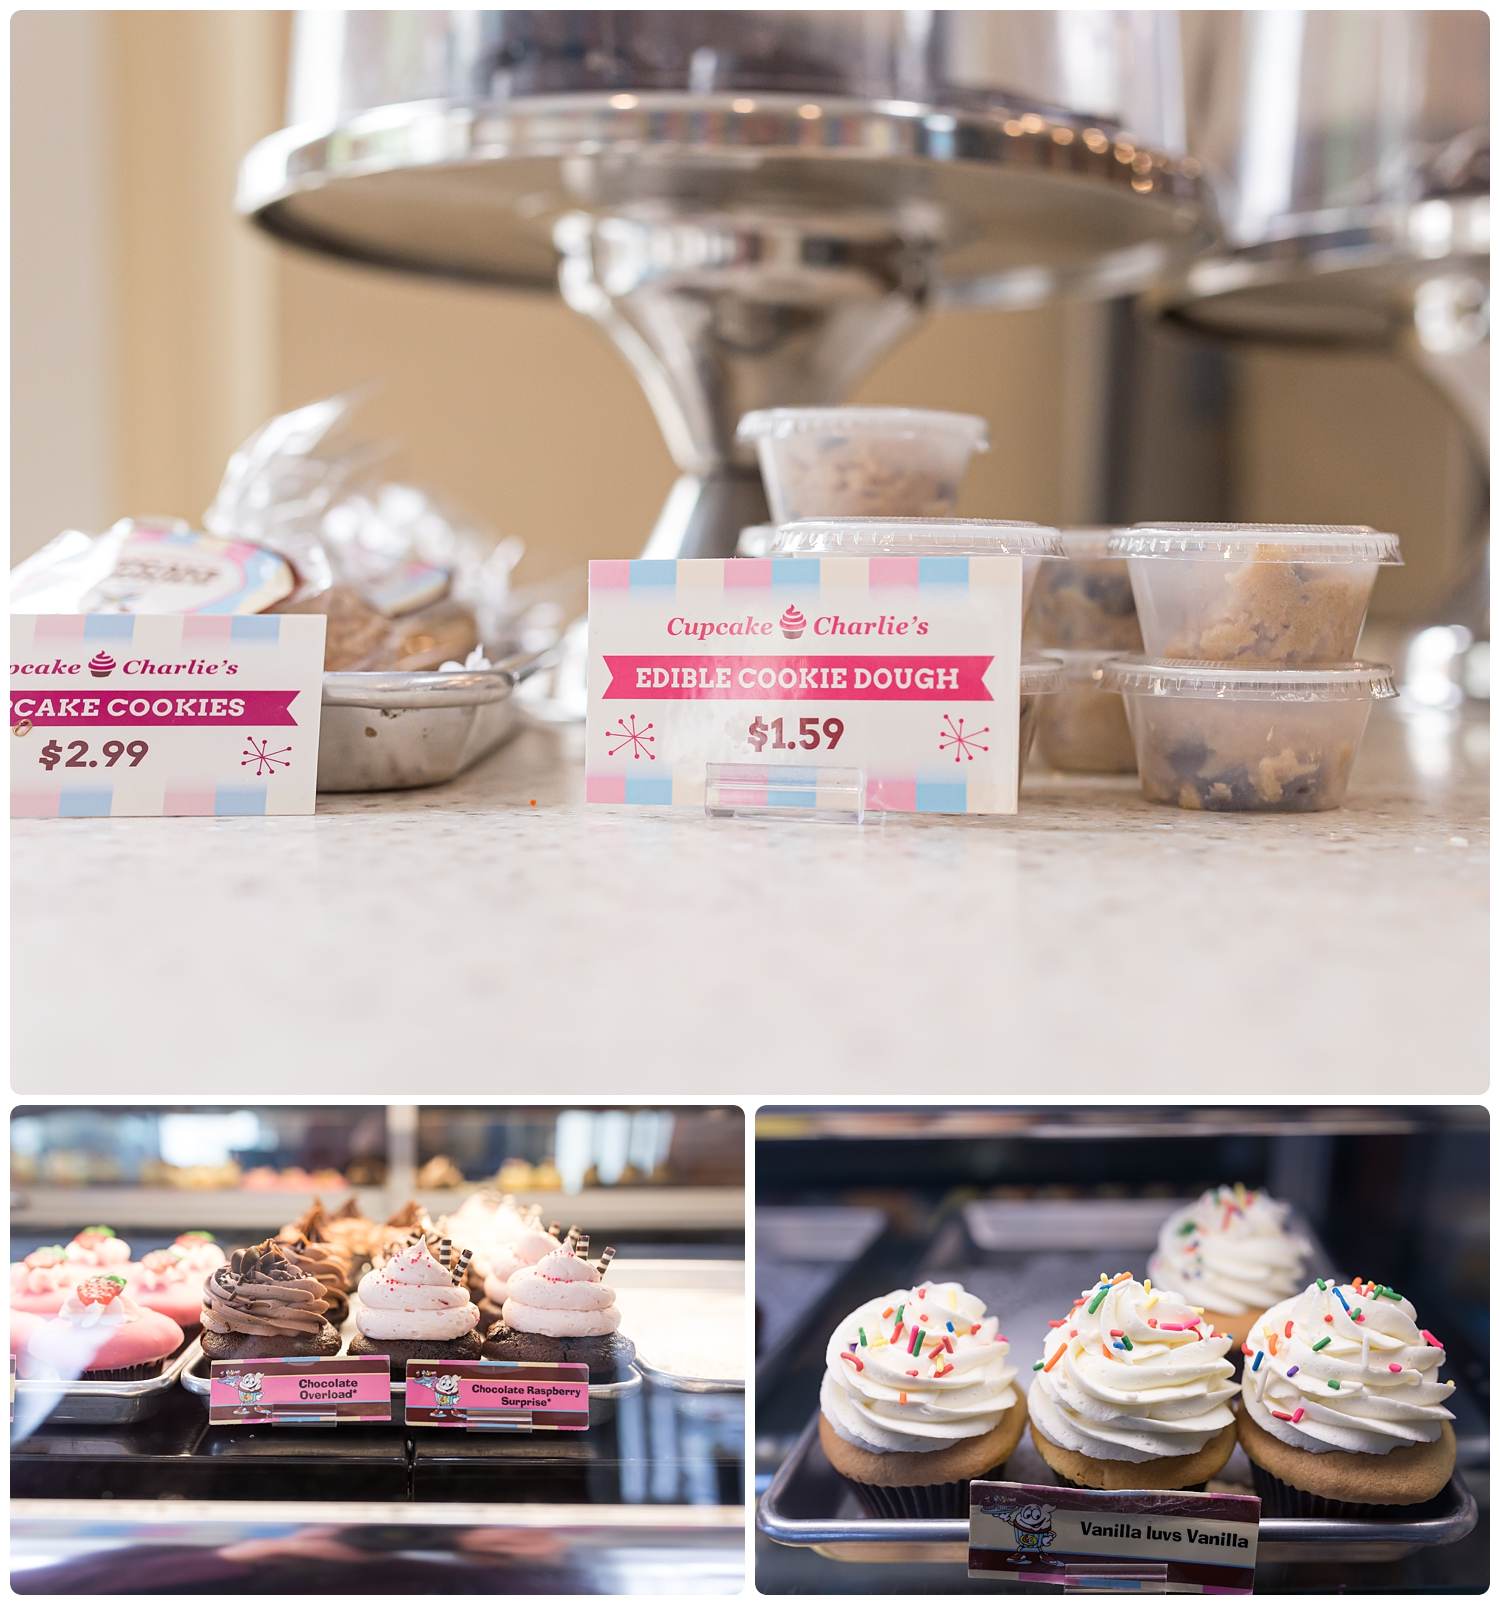 masschusetts-cupcake-charlies-photo.jpg